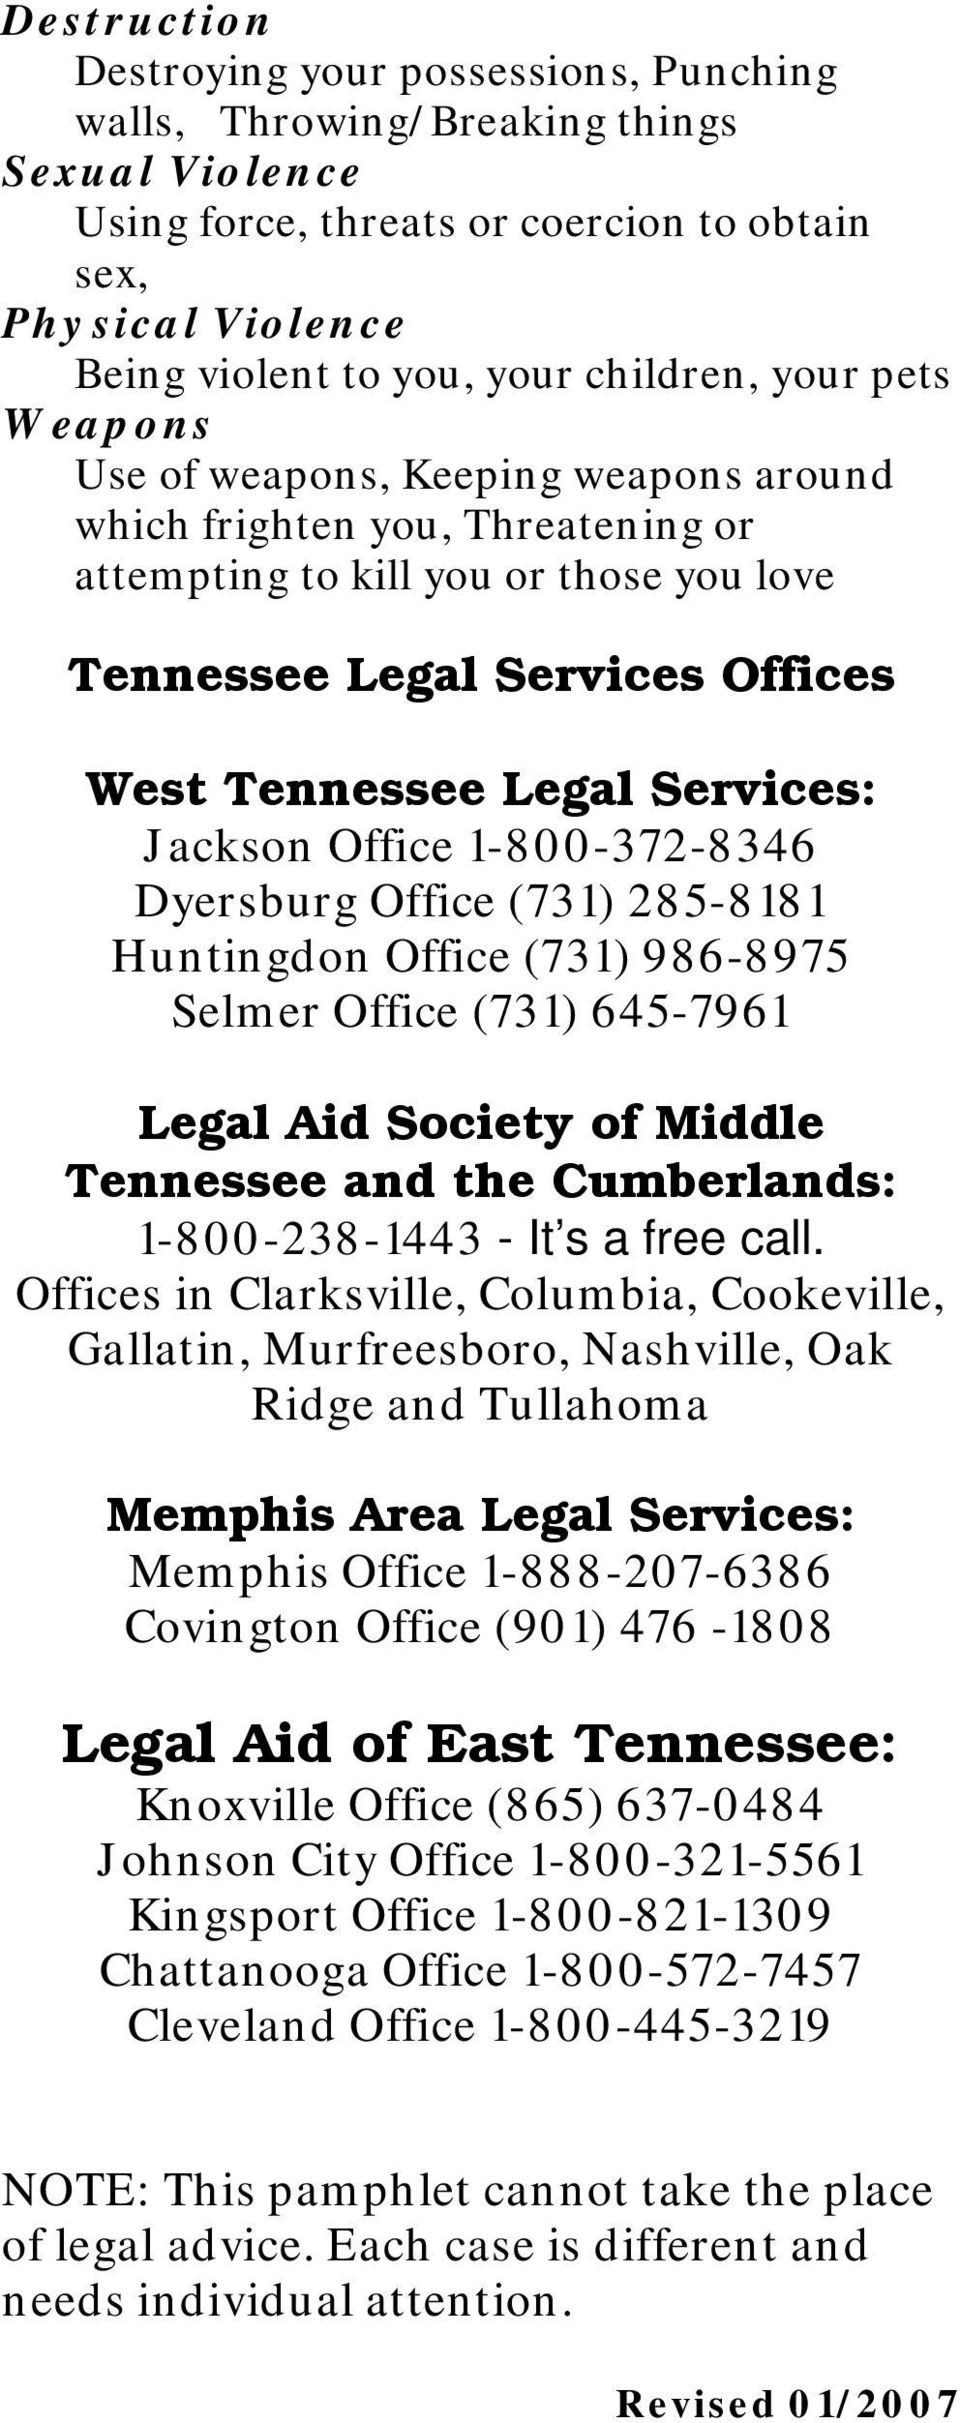 Services: Jackson Office 1-800-372-8346 Dyersburg Office (731) 285-8181 Huntingdon Office (731) 986-8975 Selmer Office (731) 645-7961 Legal Aid Society of Middle Tennessee and the Cumberlands: